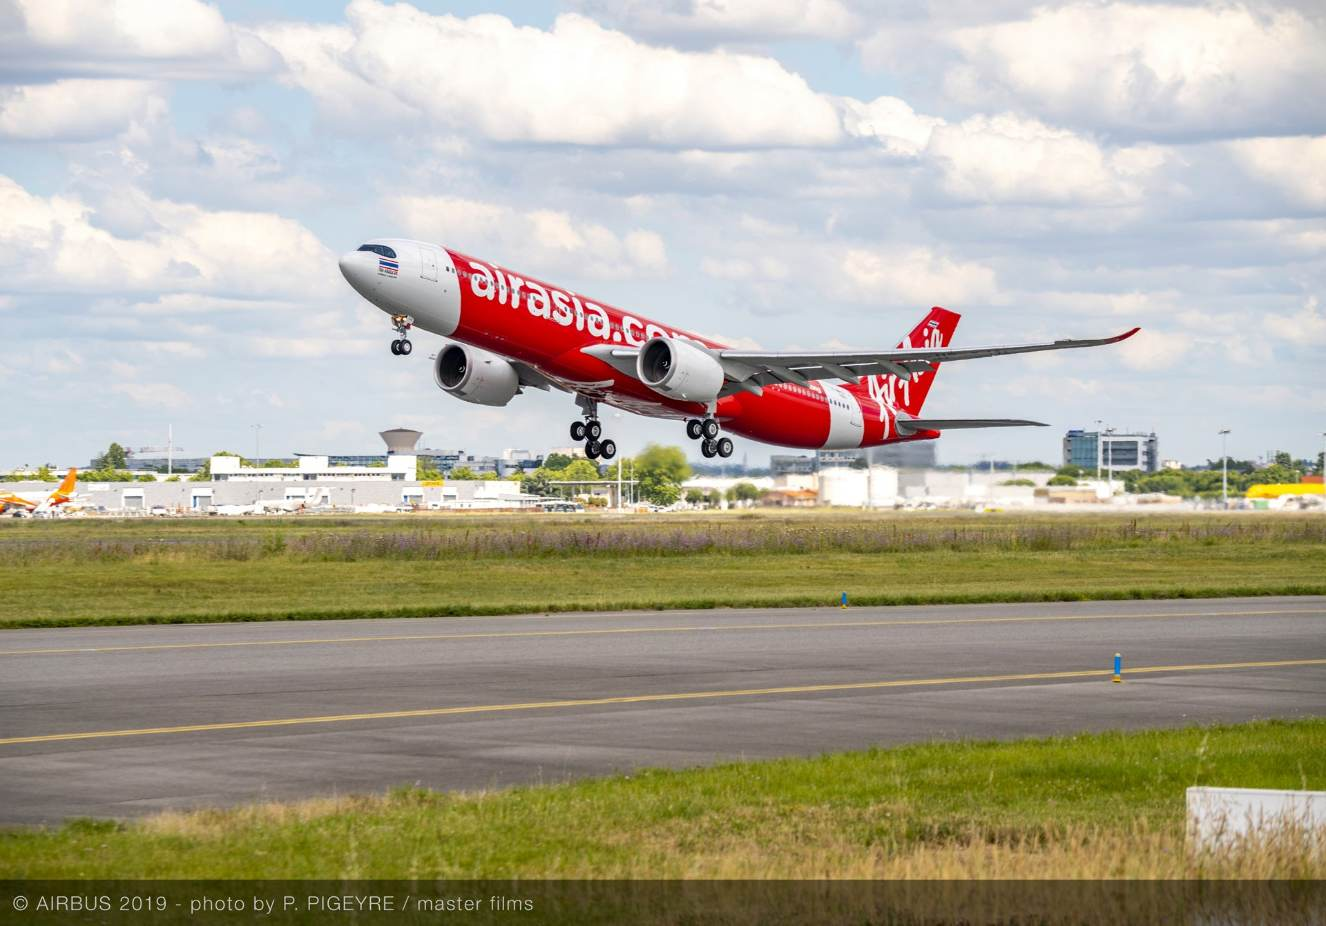 AirAsia's first Airbus A330neo